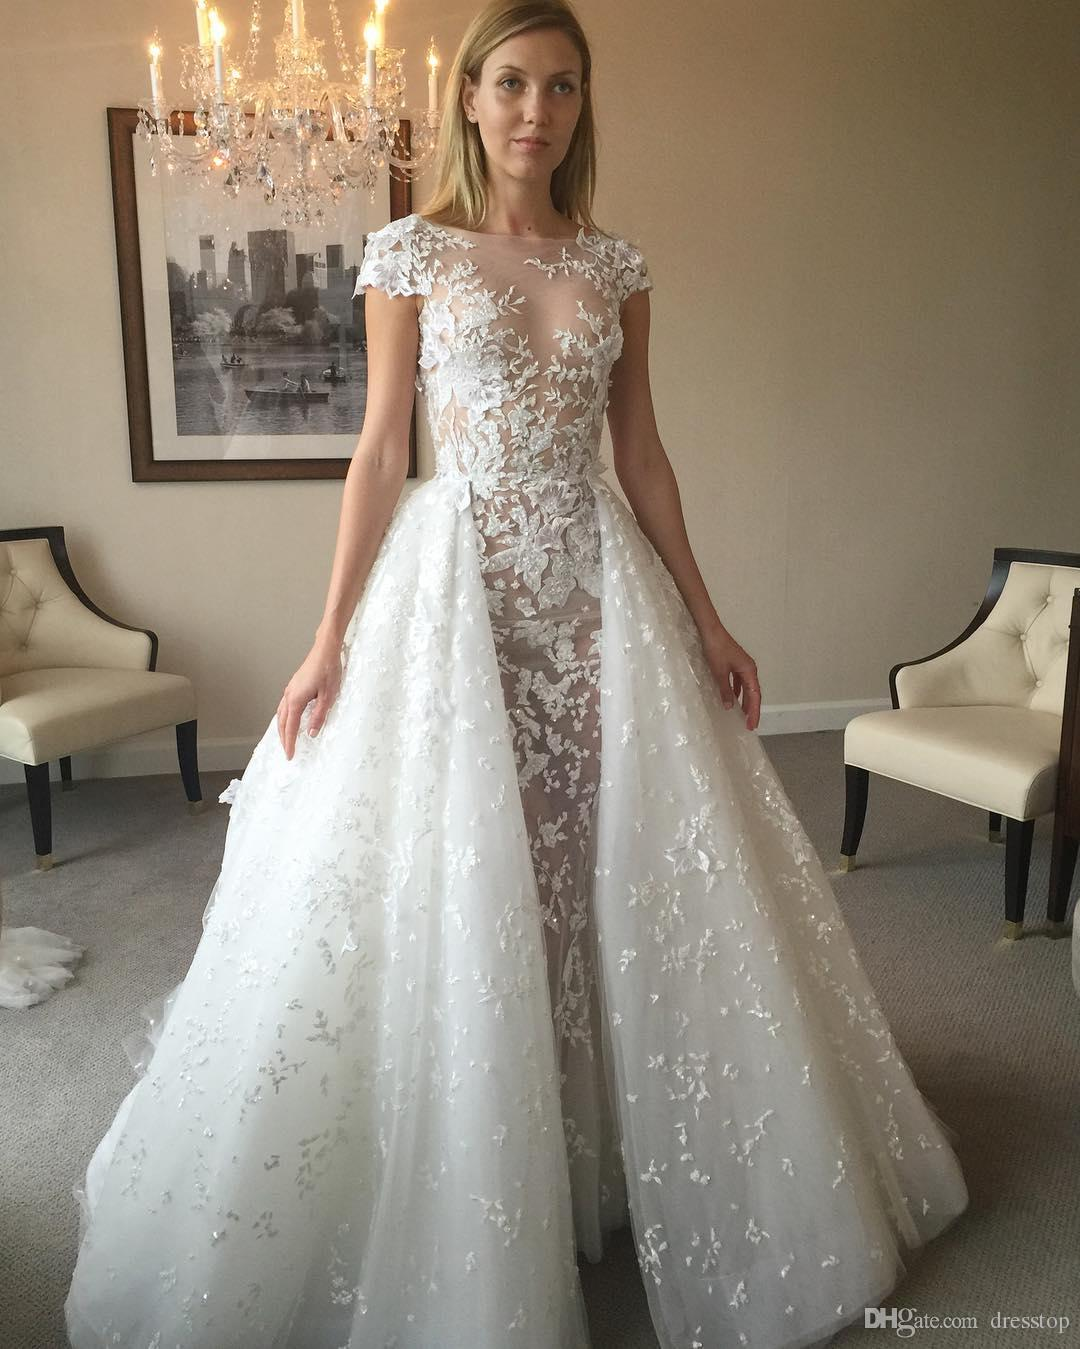 Discount 2017 Zuhair Murad Overskirt Wedding Dresses Short Sleeves Sheer Jewel Neck Appliqued